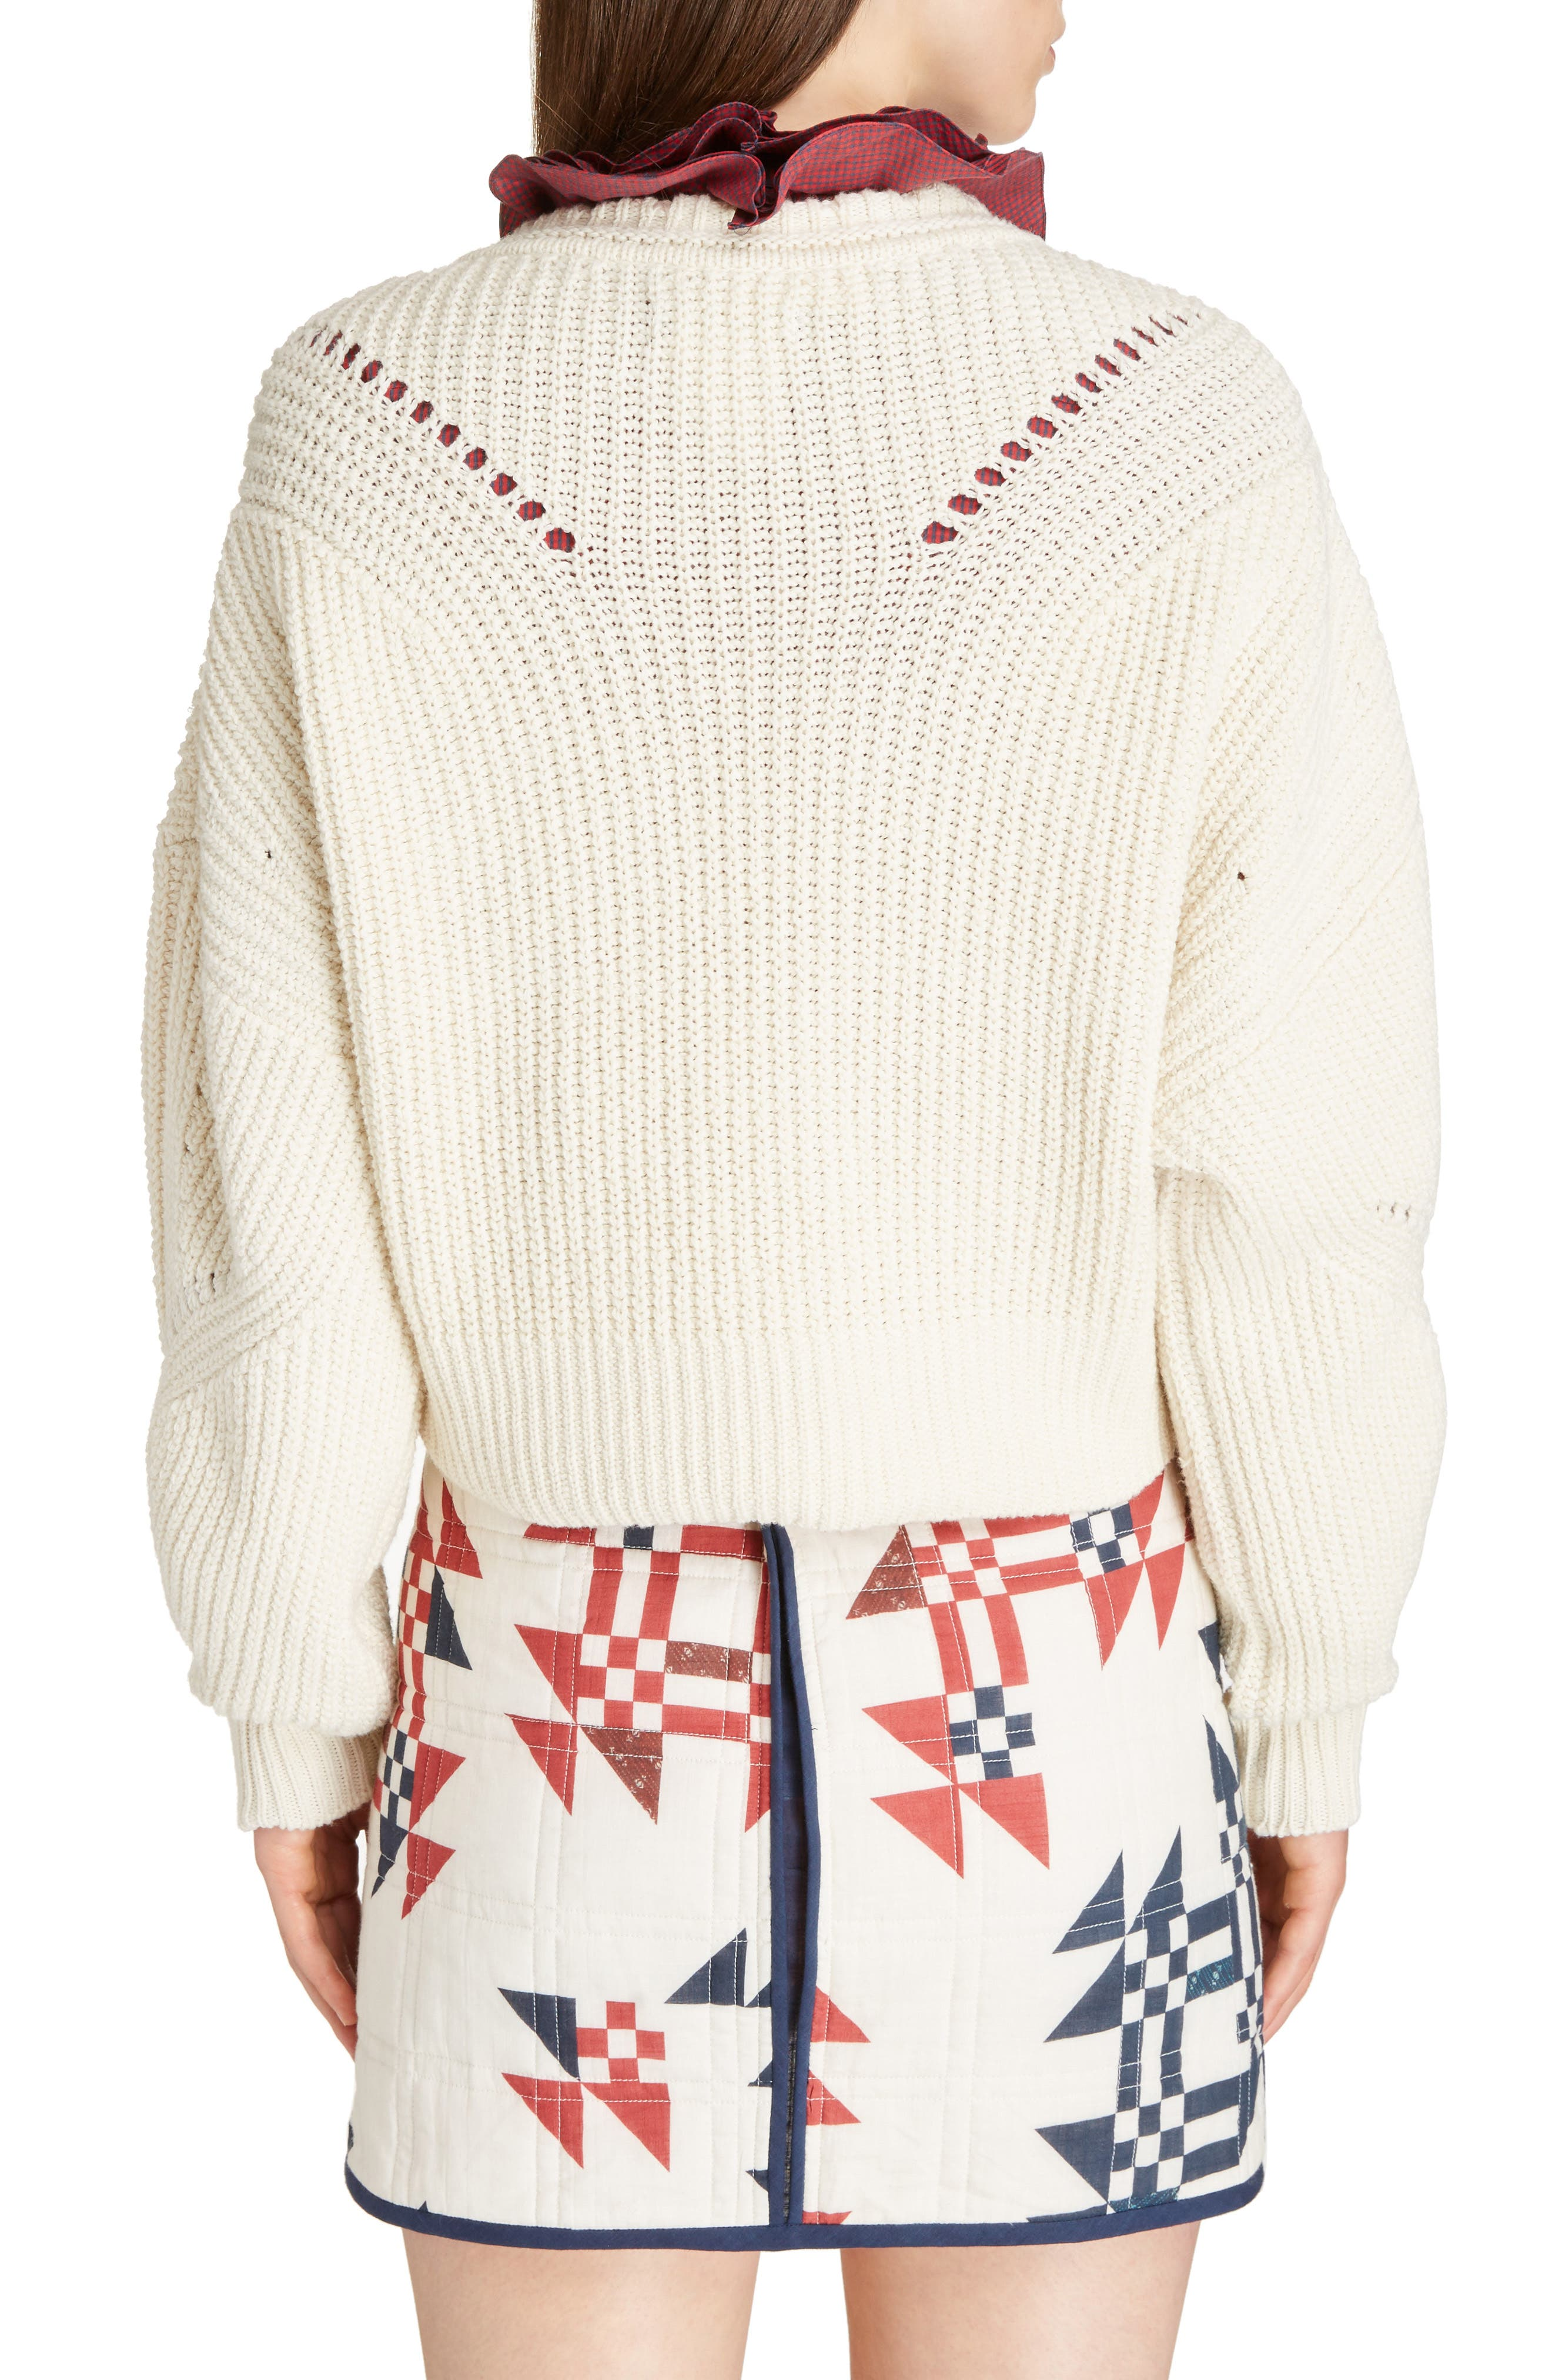 Laley Cotton & Wool Blend Sweater,                             Alternate thumbnail 2, color,